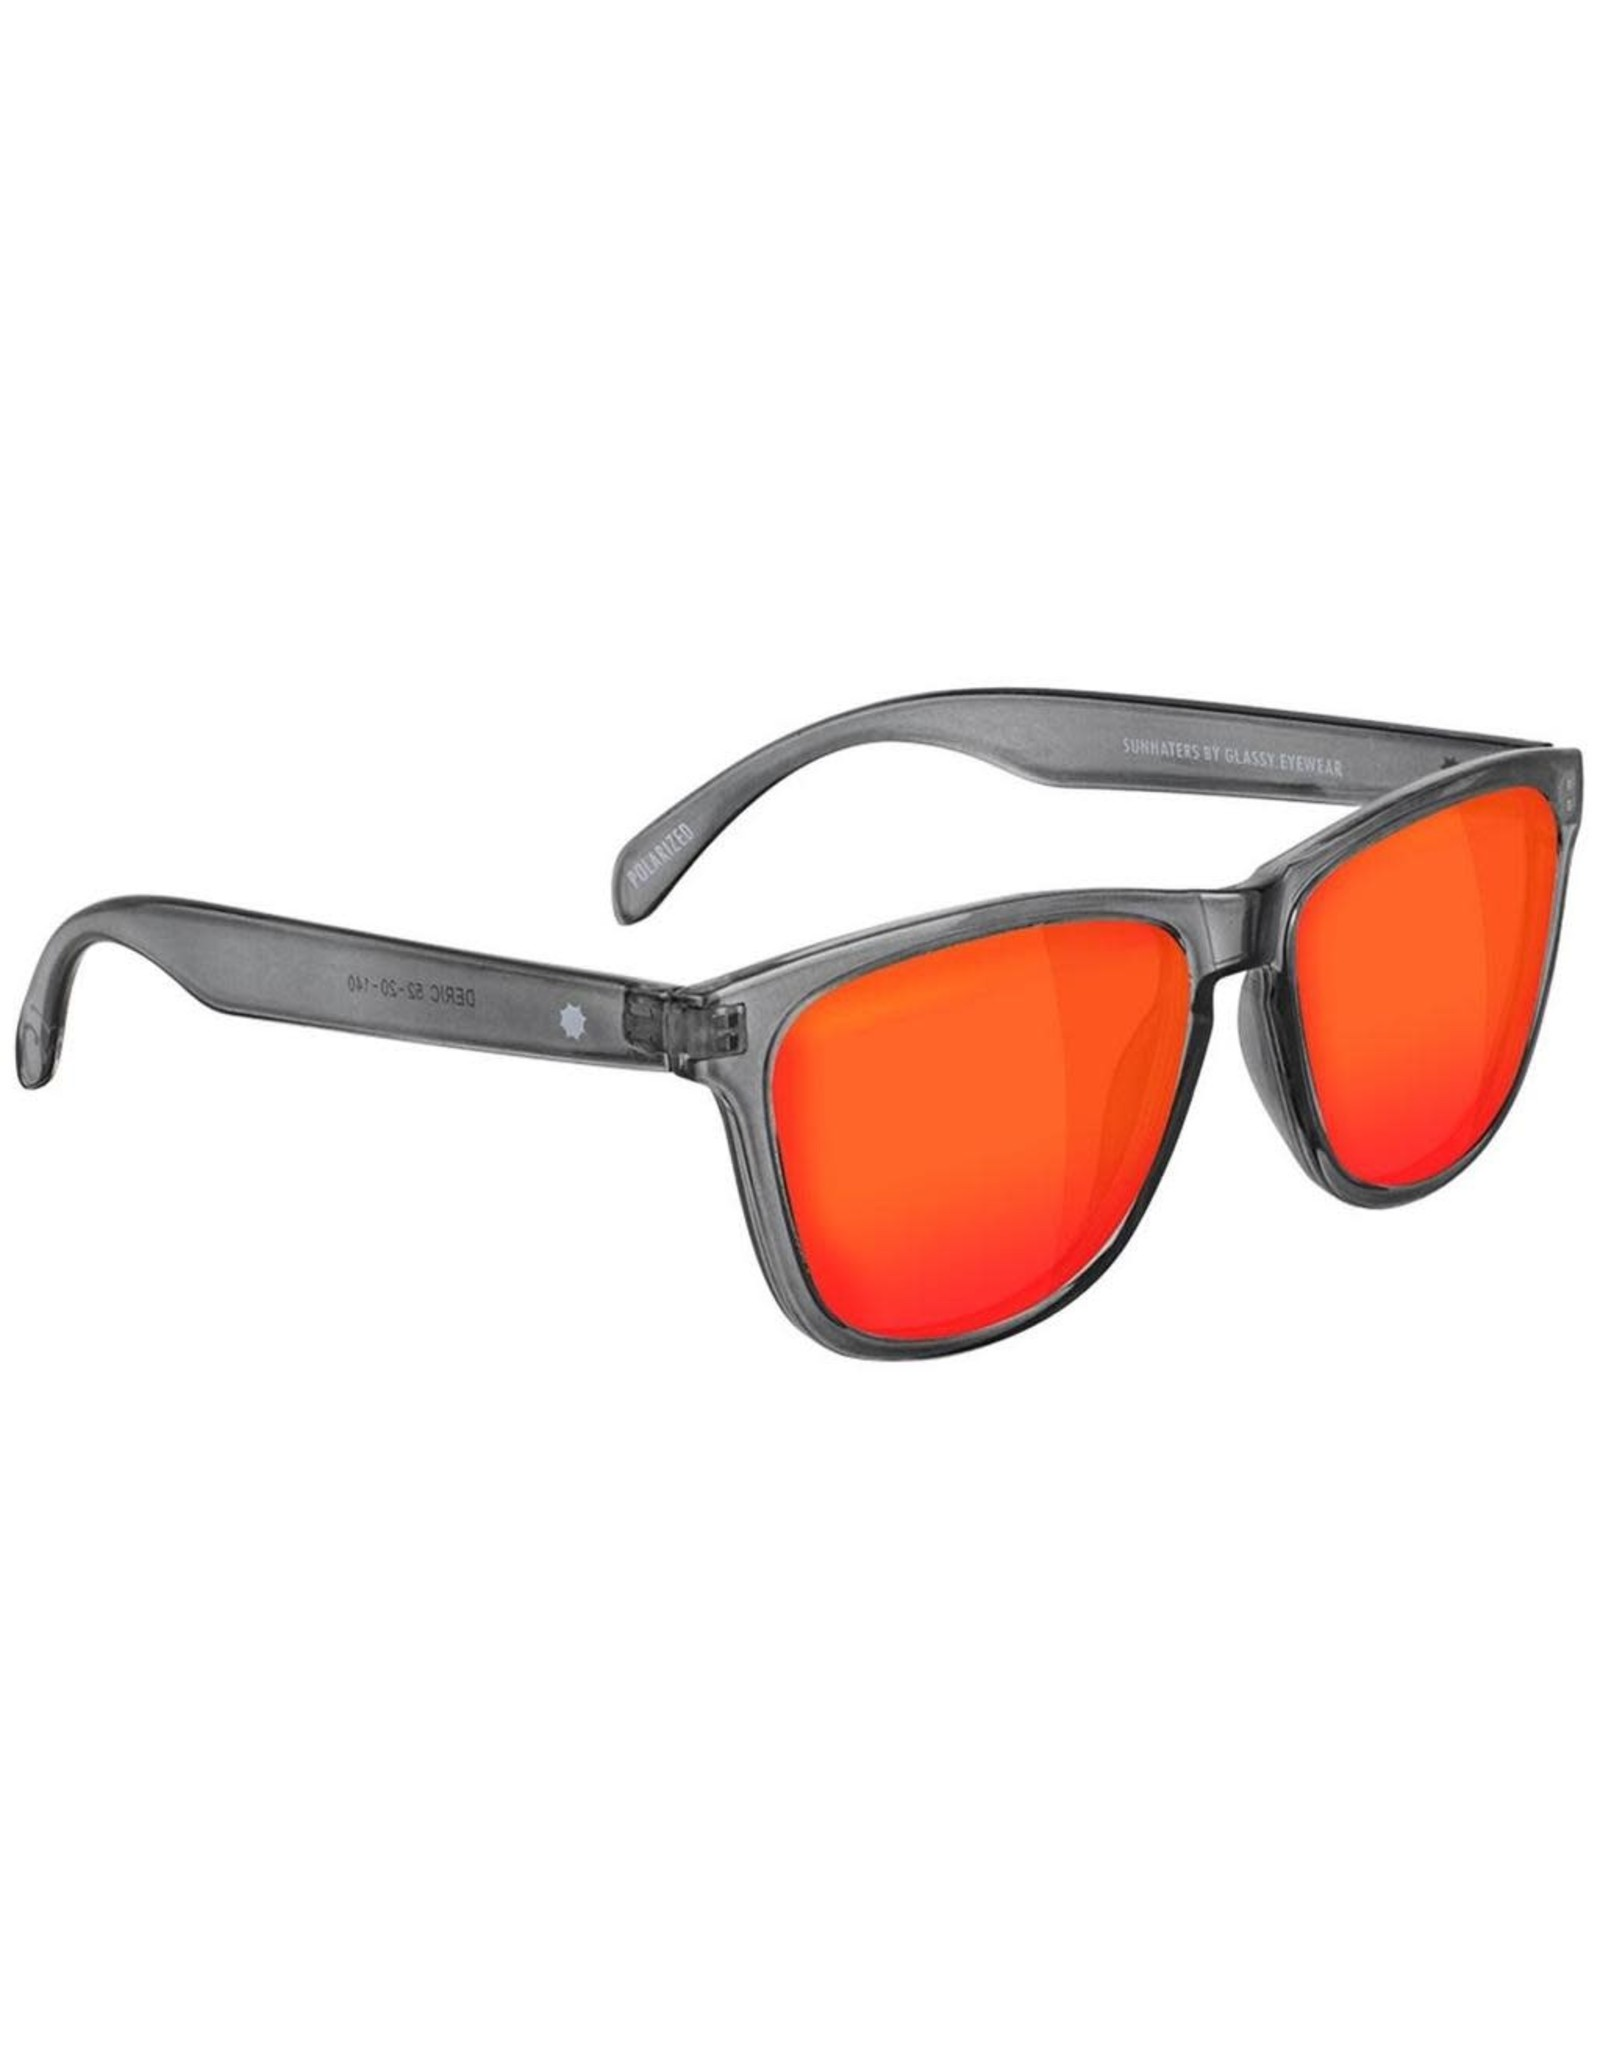 Glassy - Lunette soleil homme deric polarized clear grey/red mirror